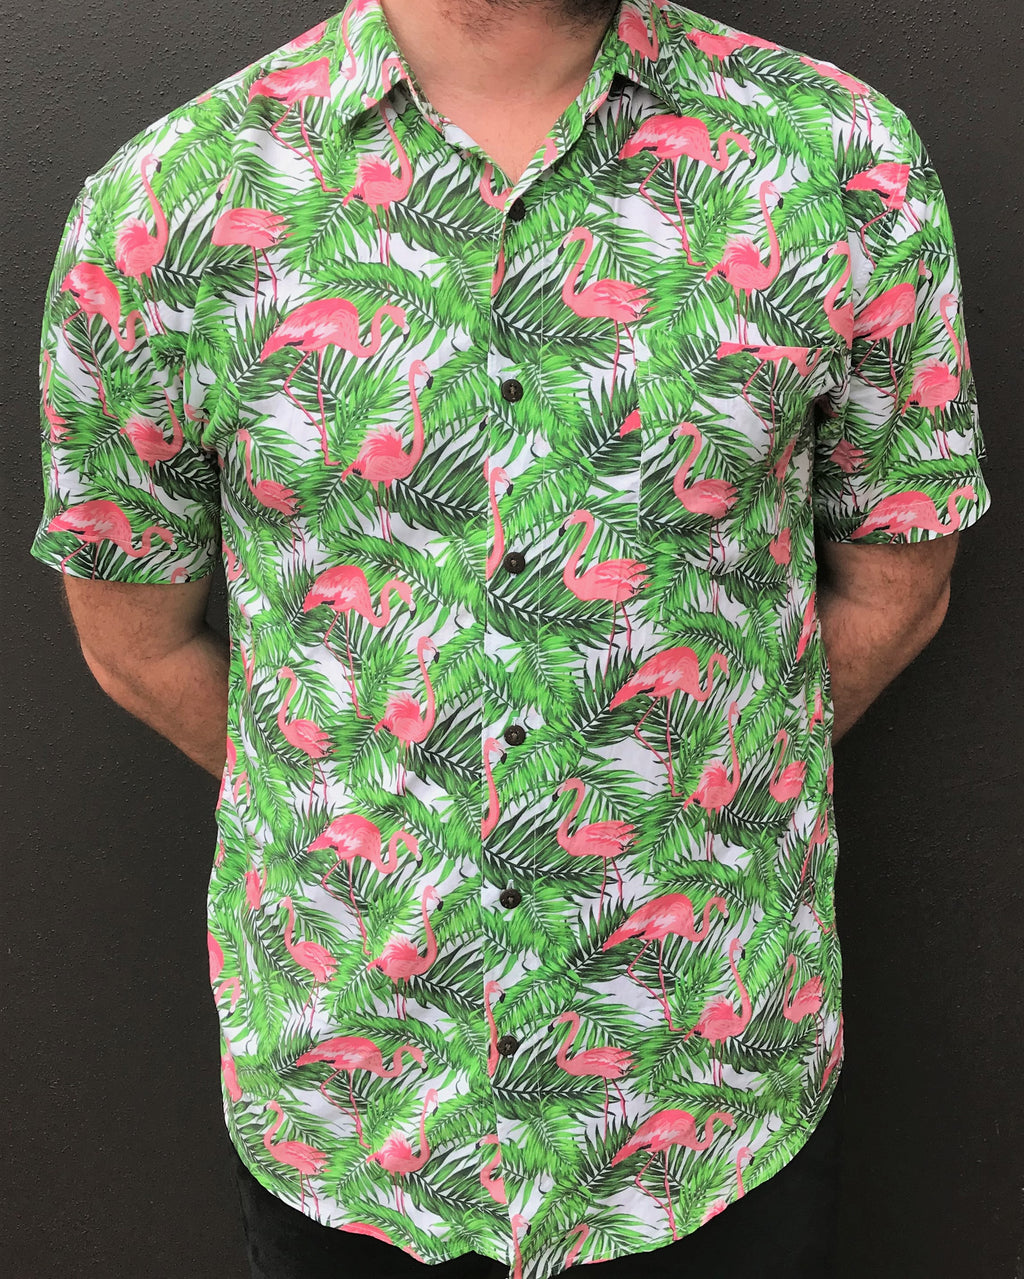 BUTTON UP PARTY SHIRT, SHORT SLEEVE FLAMINGO, HAWAIIAN SHIRT, PINK FLAMINGO SHIRT, GREEN, FESTIVAL CLOTHS,SUMMER OUTFIT, LOUD SHIRT